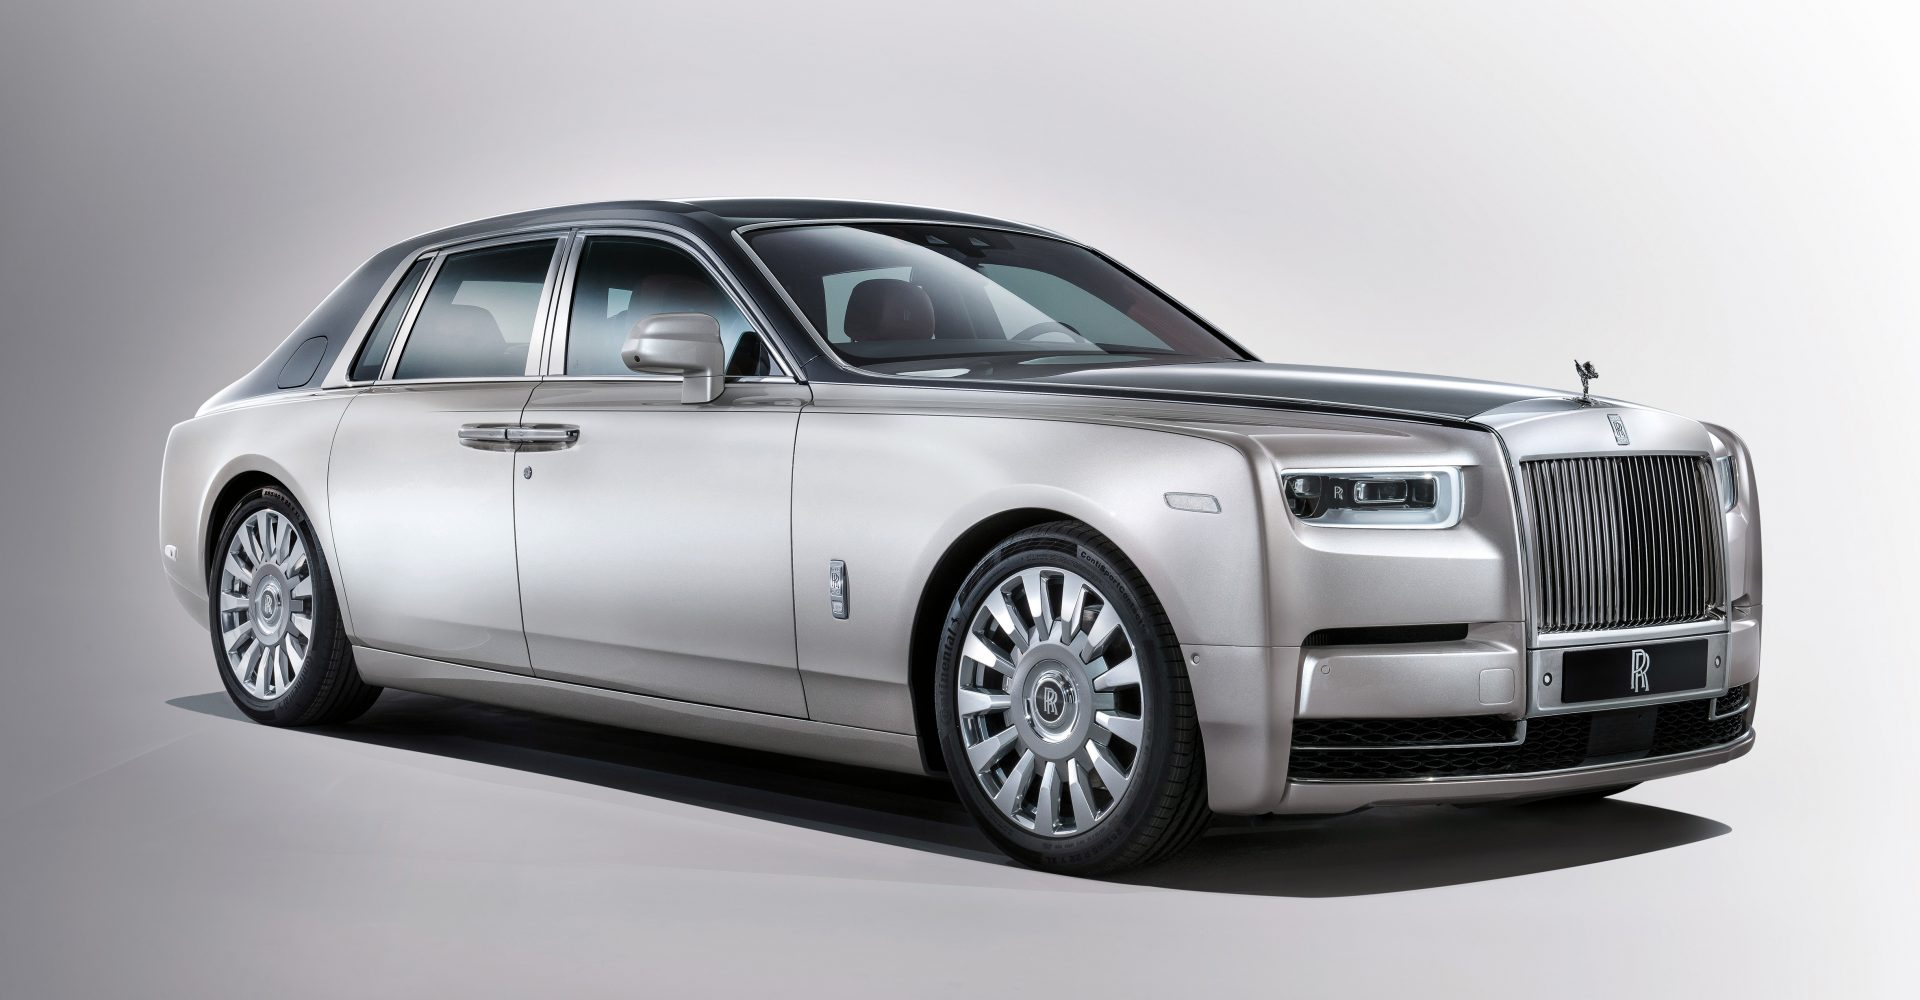 The 6 most ridiculous features of the new Rolls-Royce Phantom